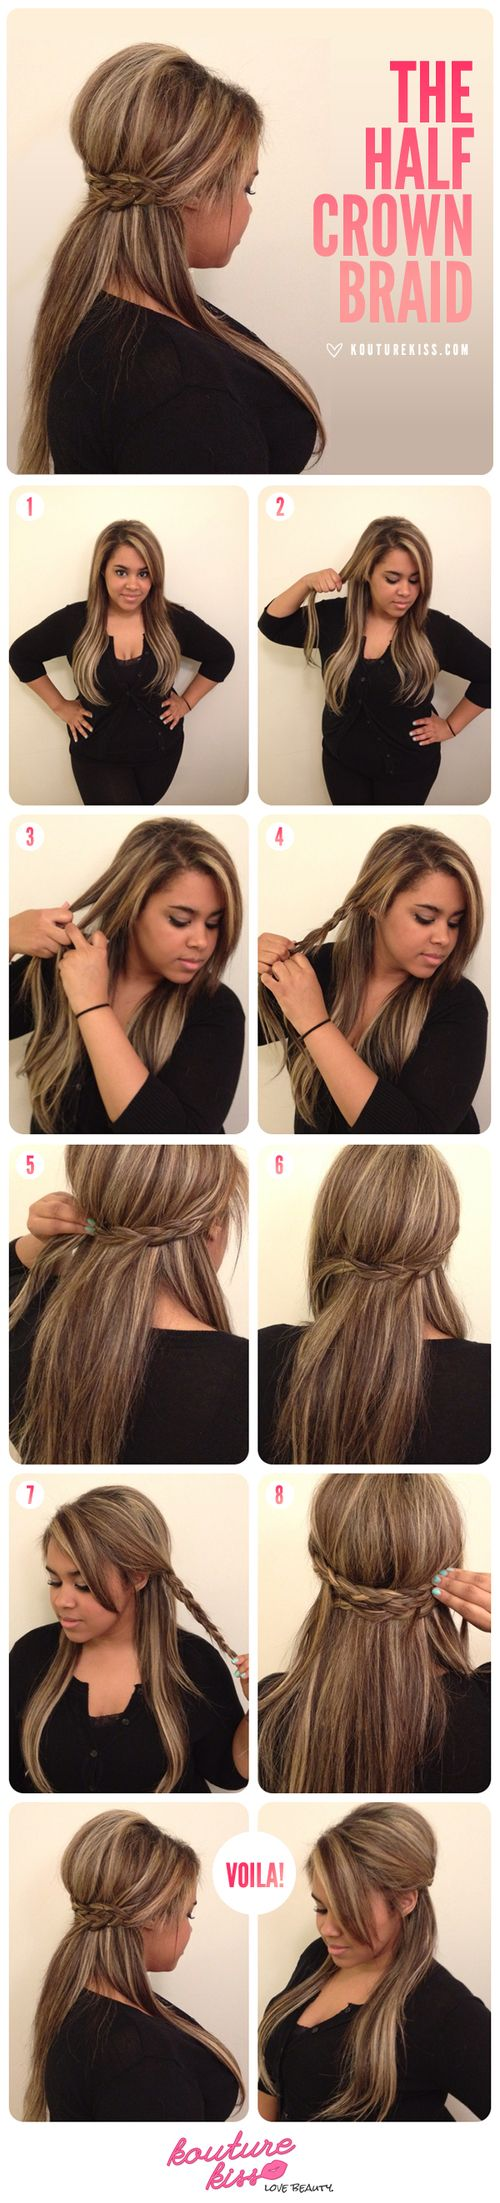 Half Crown Braid Tutorial I bet this would look cool with my curls!